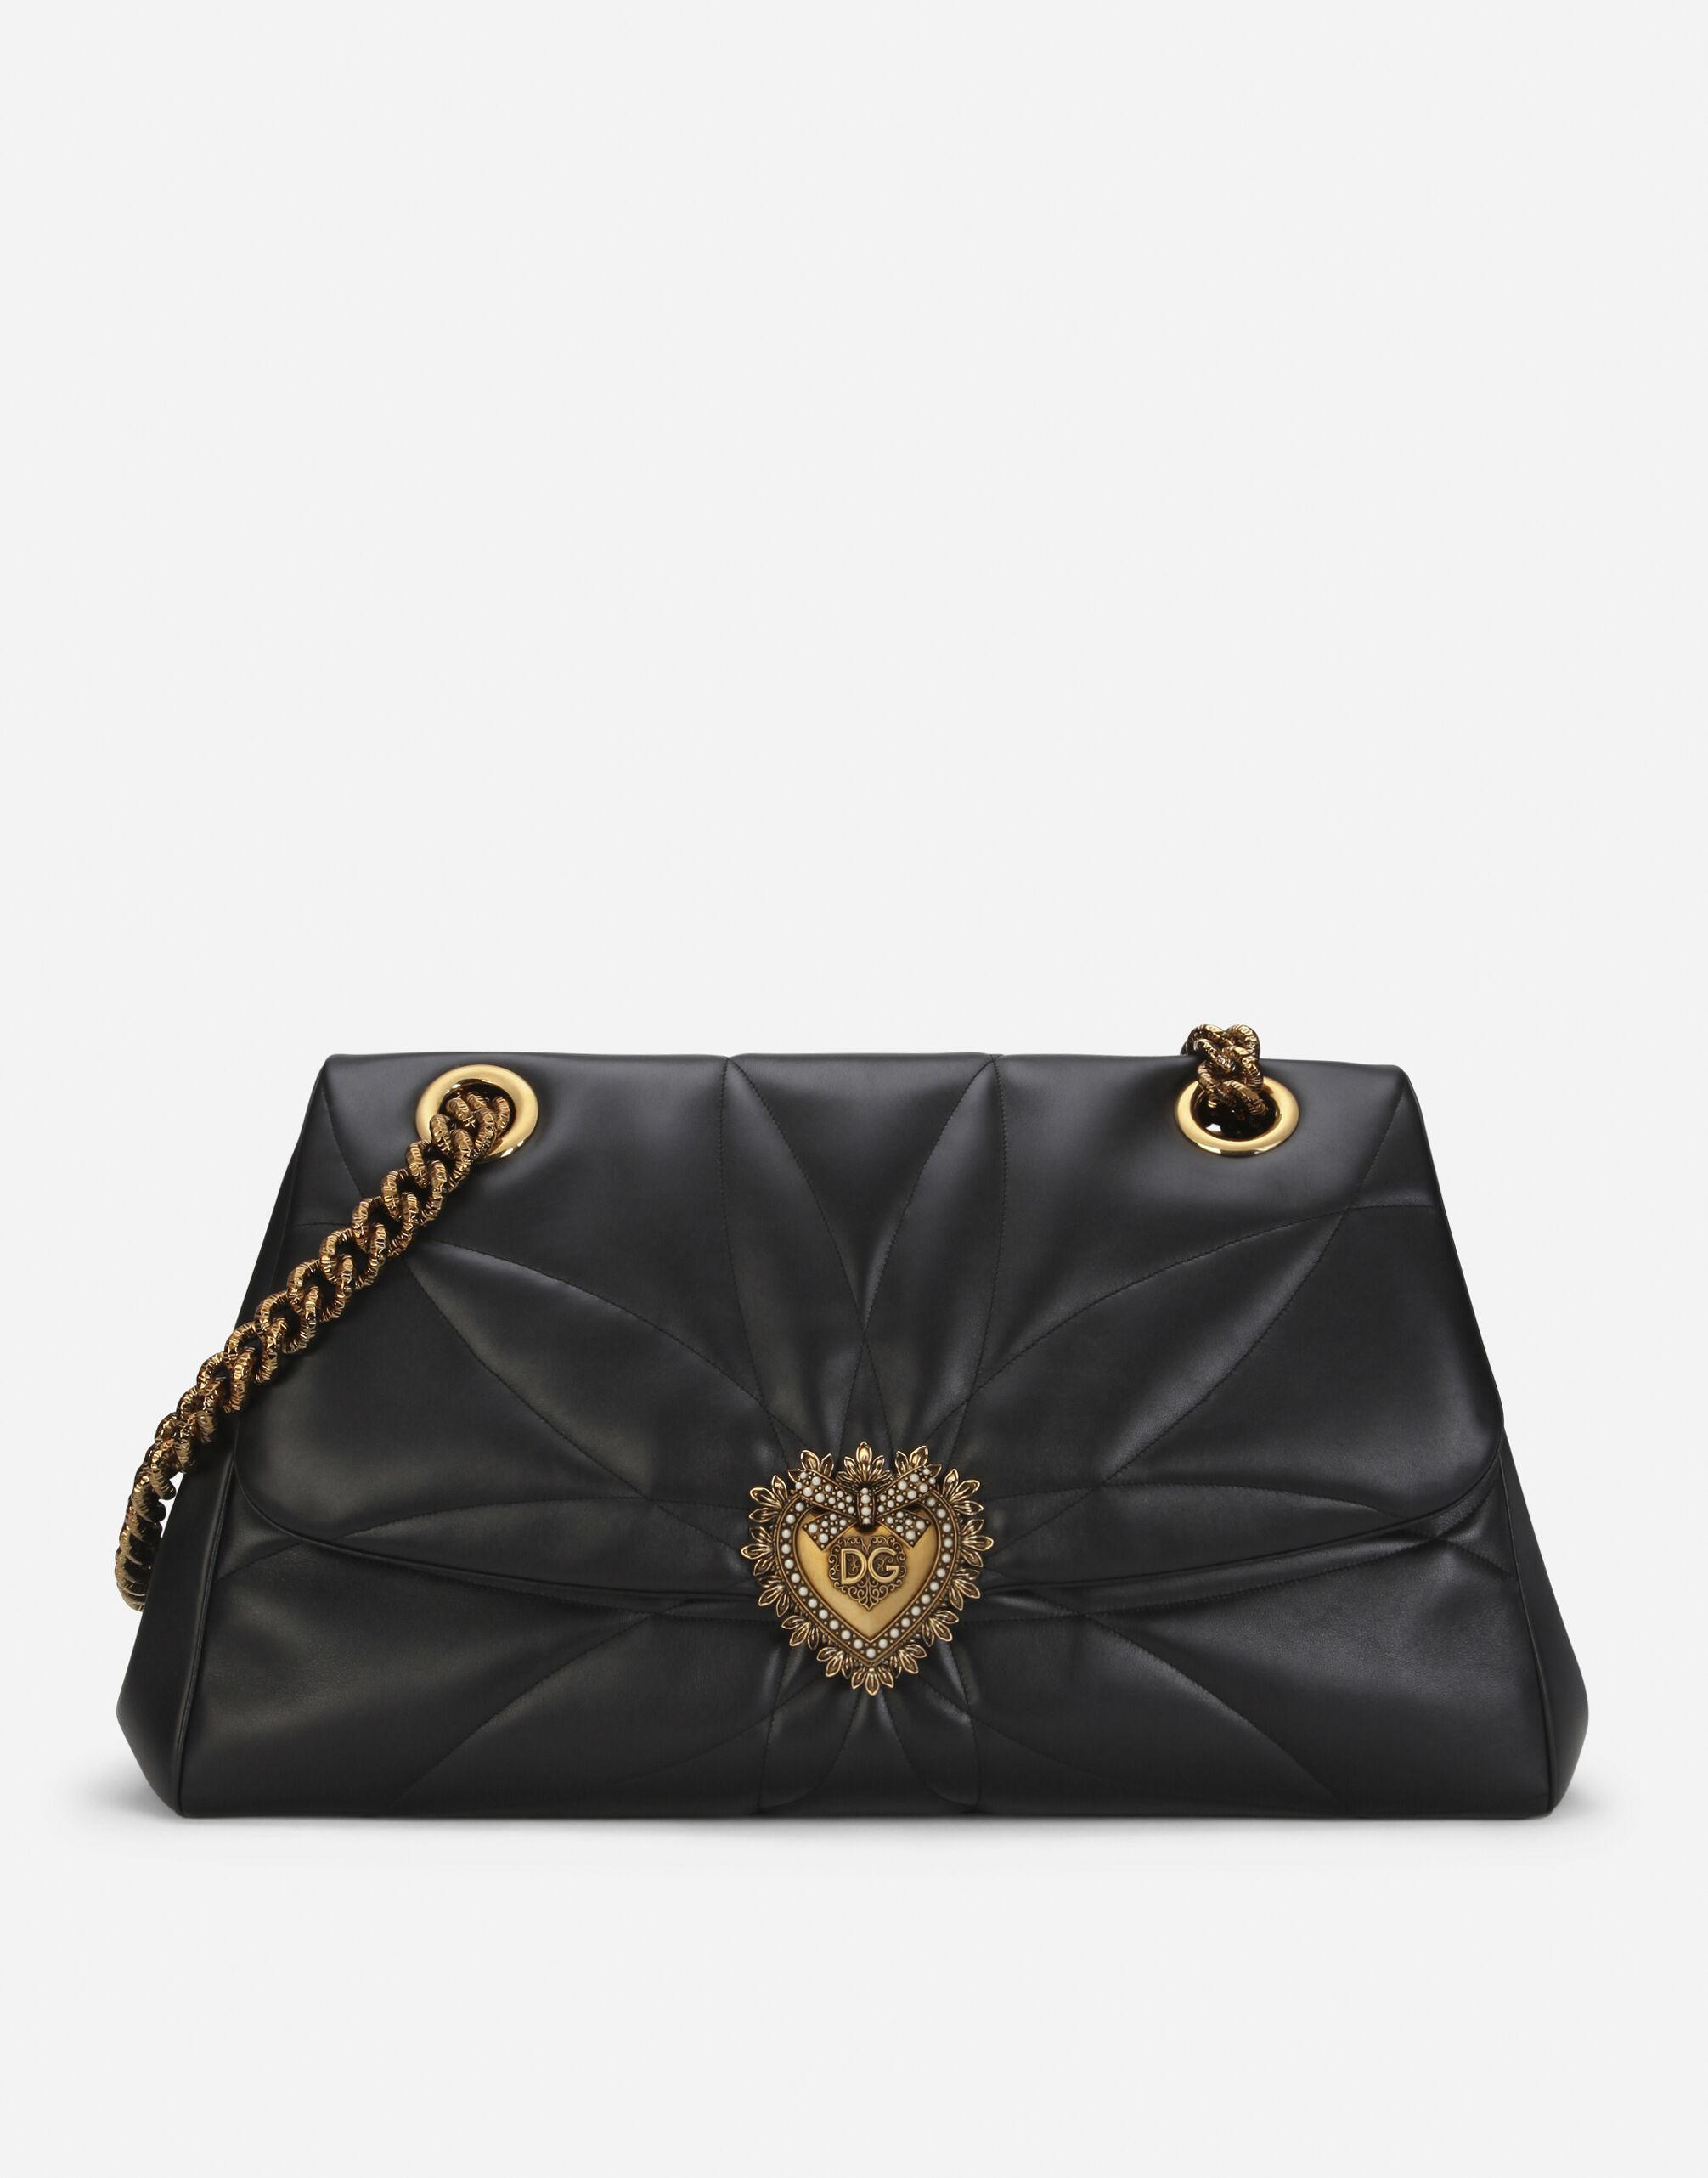 Devotion maxi-bag in quilted nappa leather